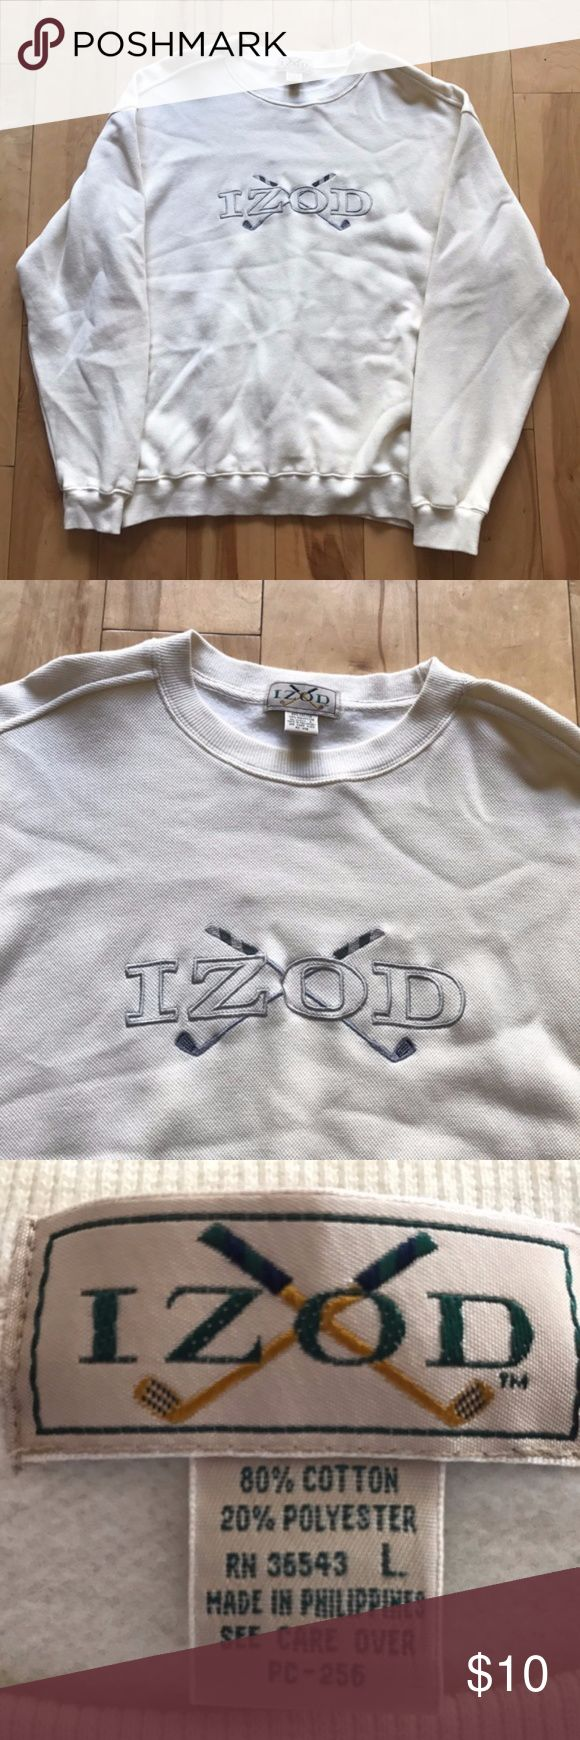 VTG IZOD GOLF EMBROIDERED CREWNECK MEN'S SIZE L Details: Brand new condition! No stains or holes! Cream crewneck. Izod Golf big logo embroidered on front.  Measurements: Pit-to-pit: 23 inches. Sleeves: 24 inches. Back Length: 28 inches.  *Ships from US.  *Same or next day shipping.  *First-Class US shipping (delivery in 1 to 3 business days).  *First-Class International shipping (delivery in 7 to 21 business days).  *Tracking # supplied after payment.  FEEL FREE TO MESSAGE ME FOR ANY ITEM…